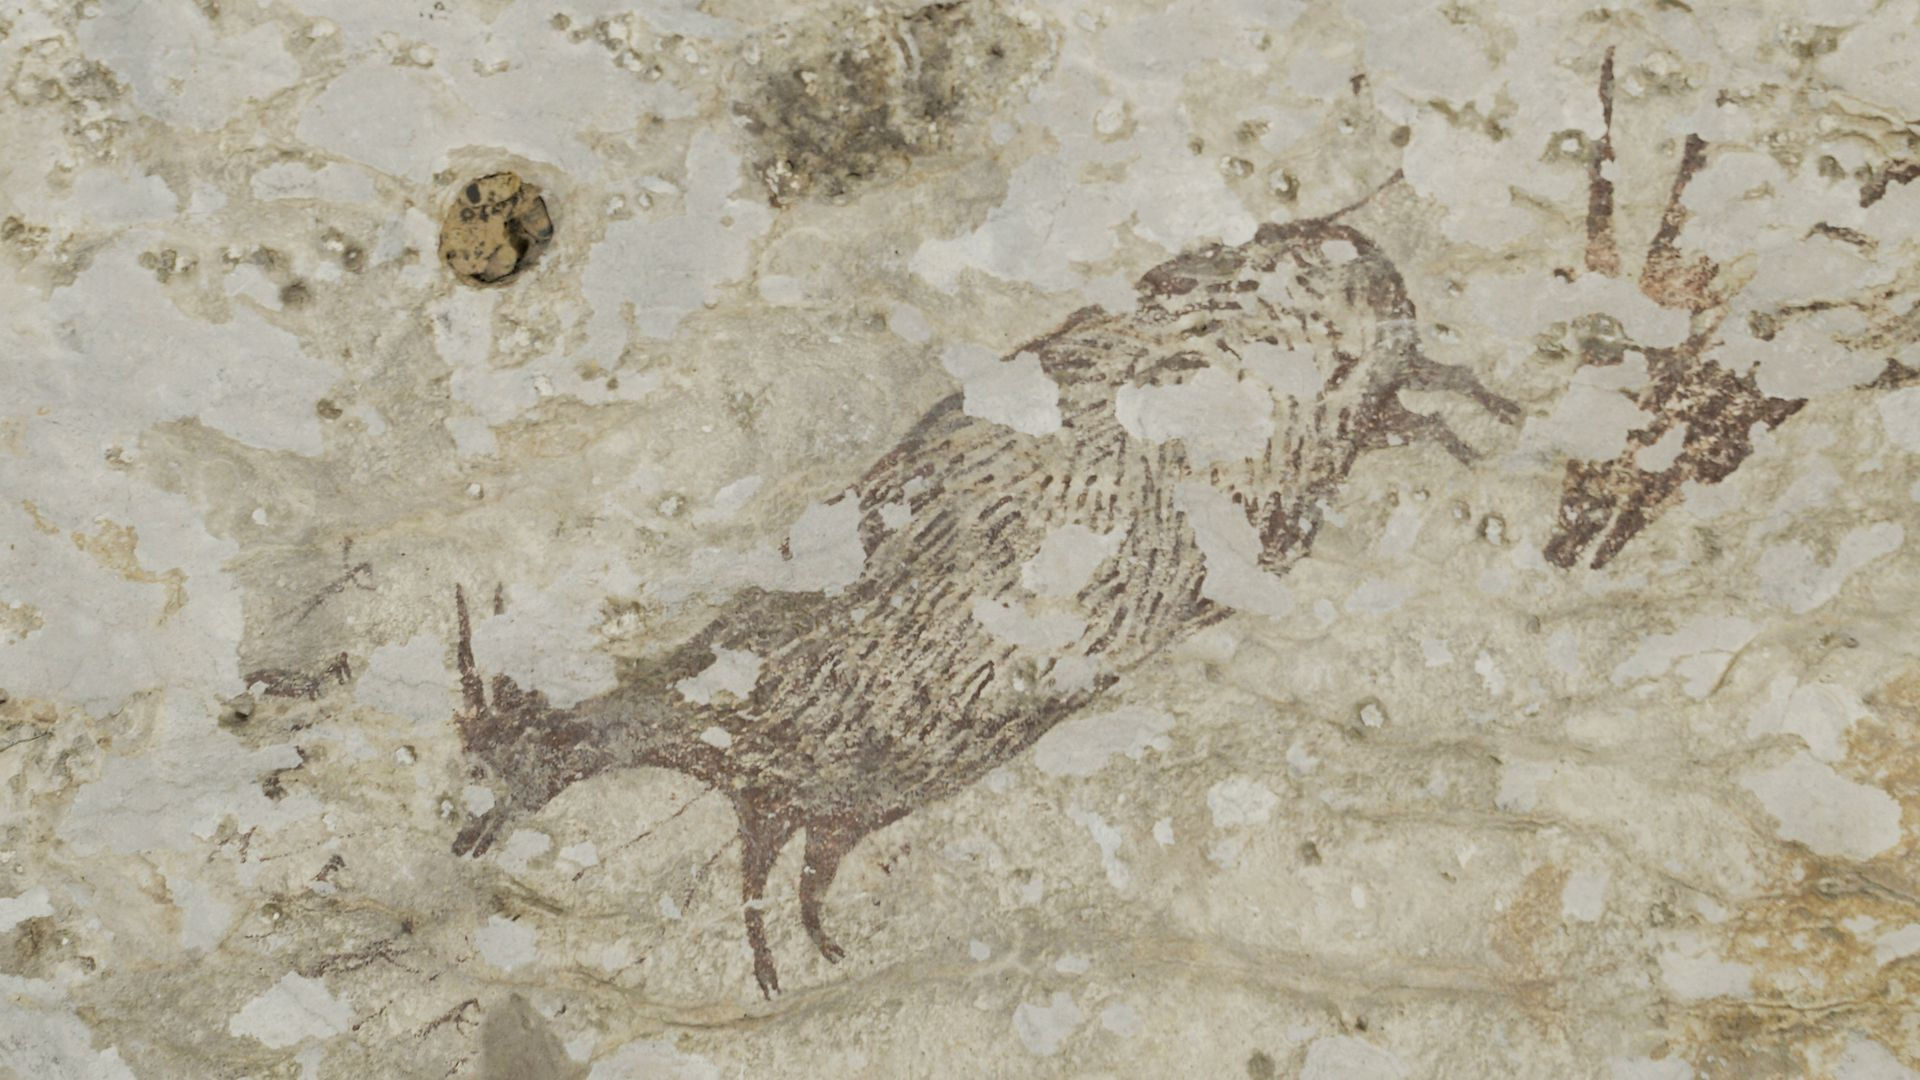 Study: 44,000-year-old cave paintings discovered in Indonesia